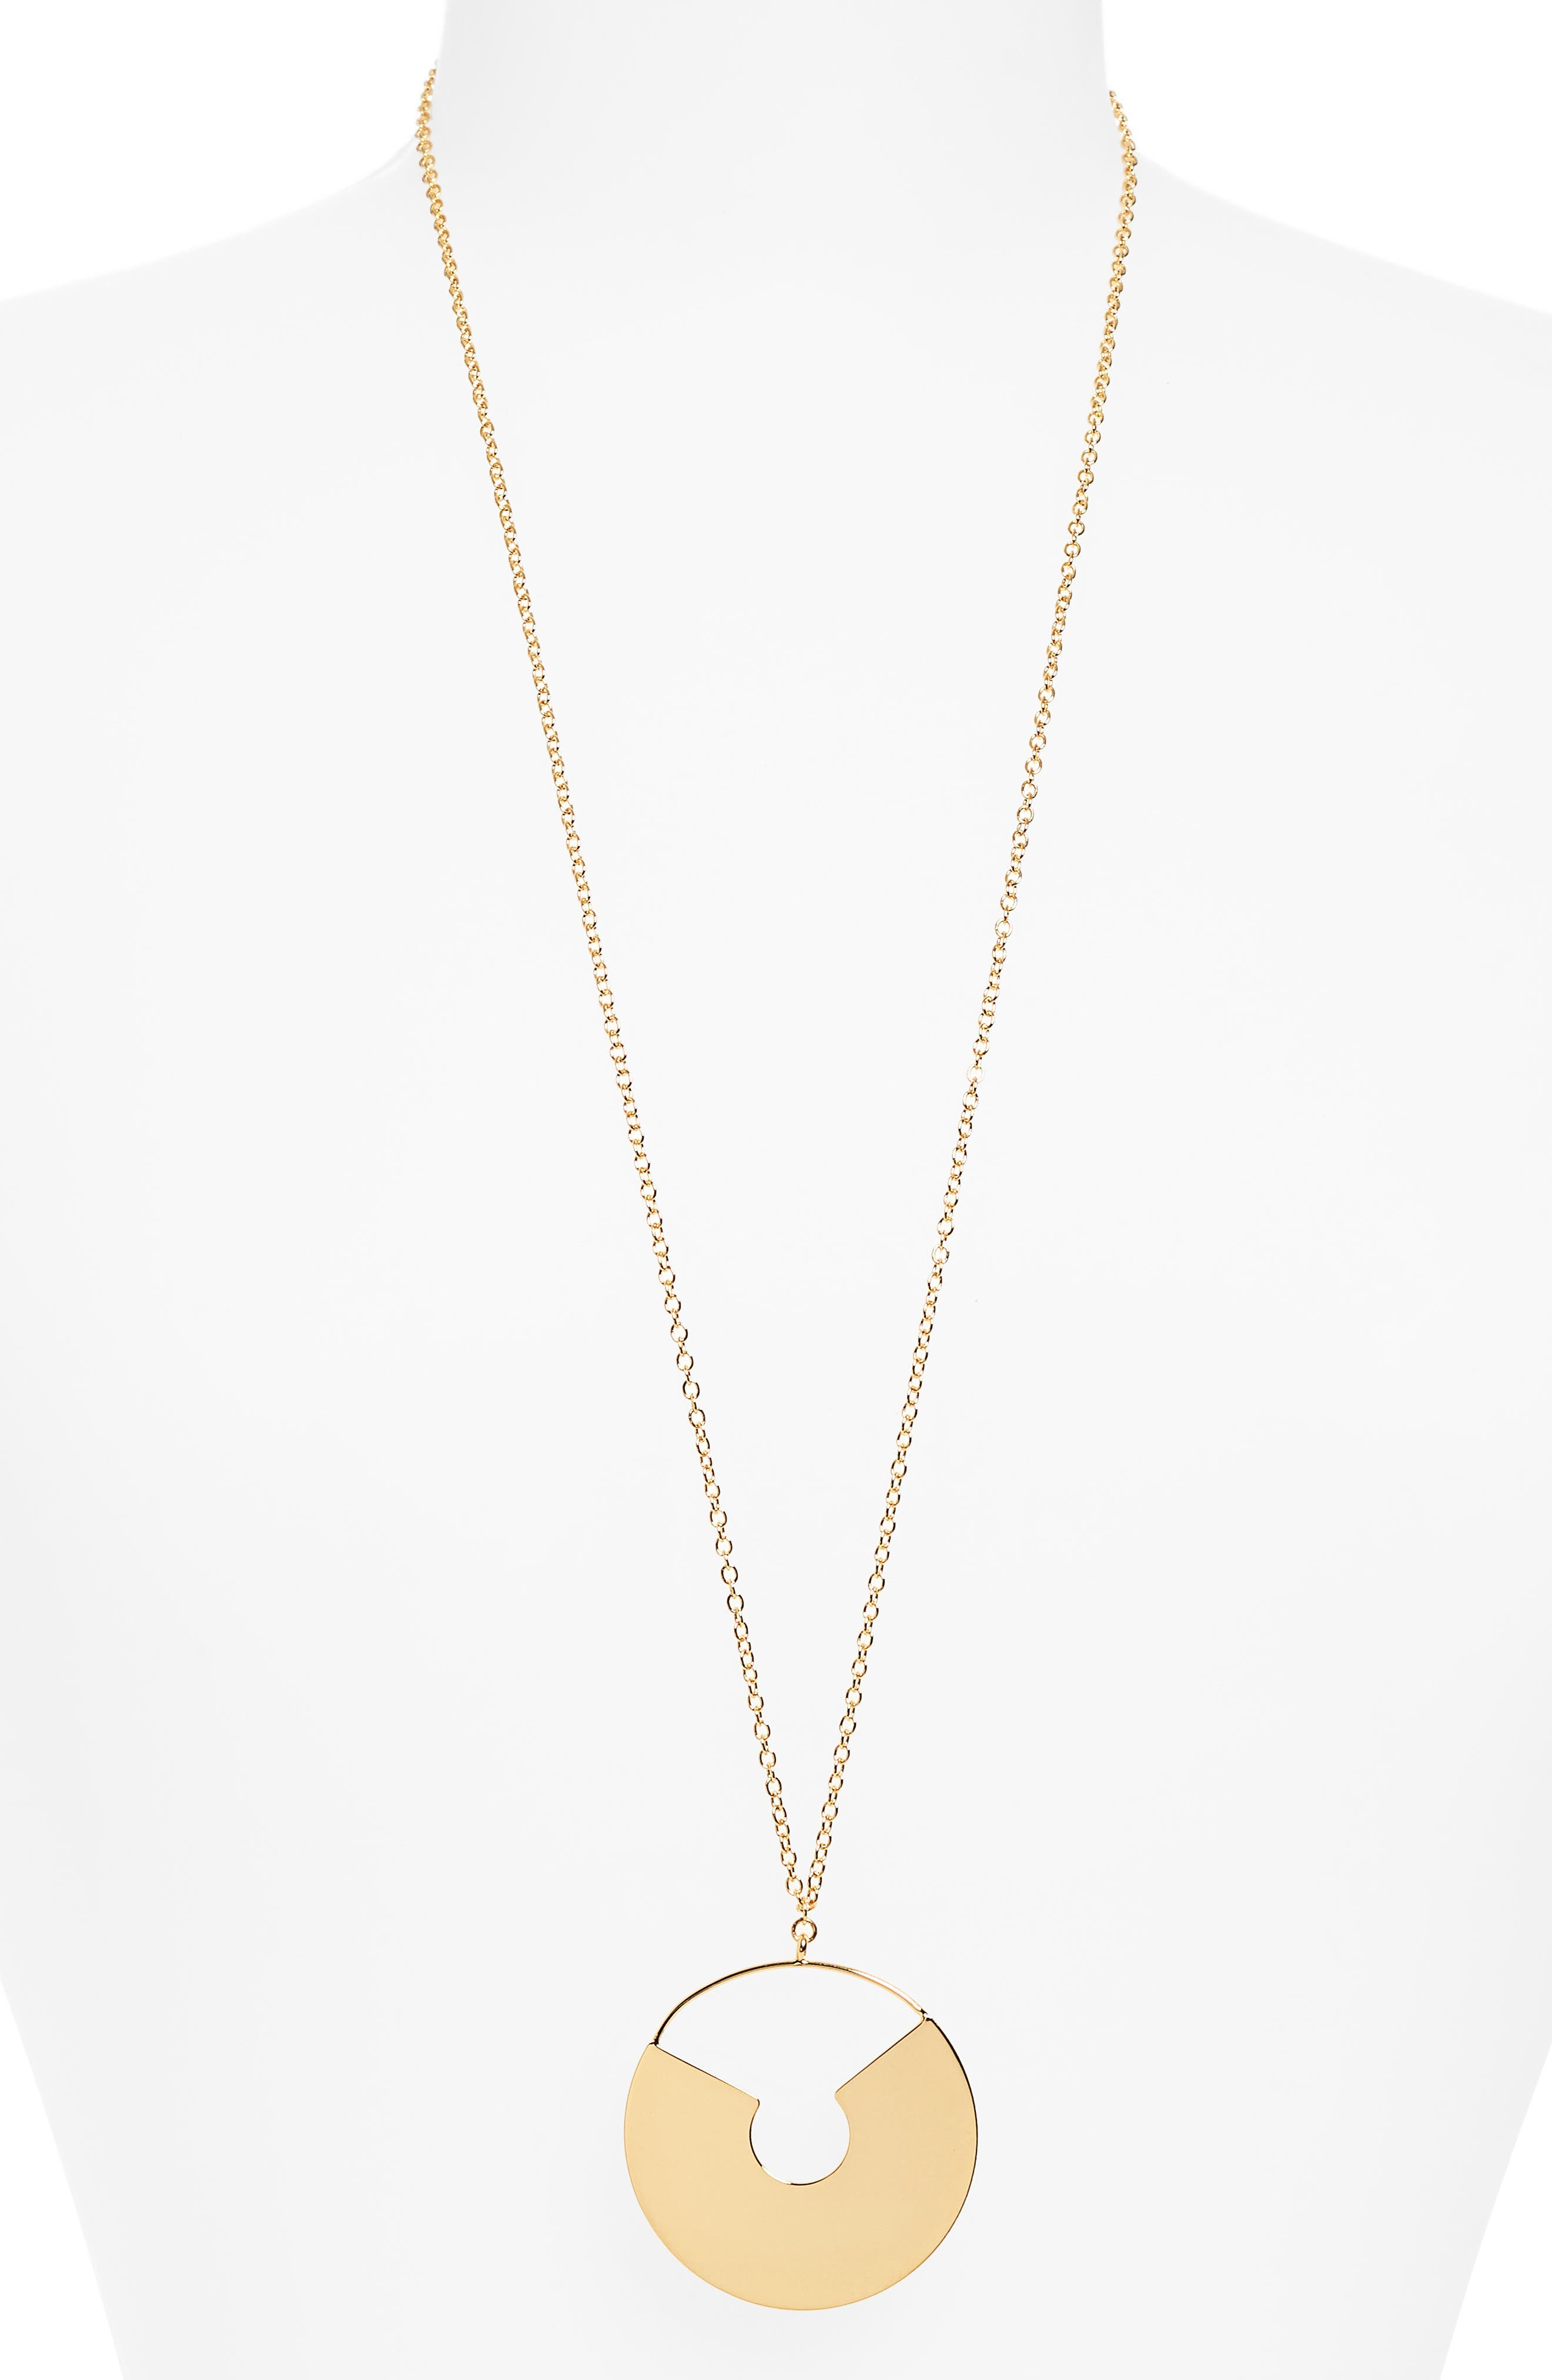 Shukti Necklace,                         Main,                         color, Gold